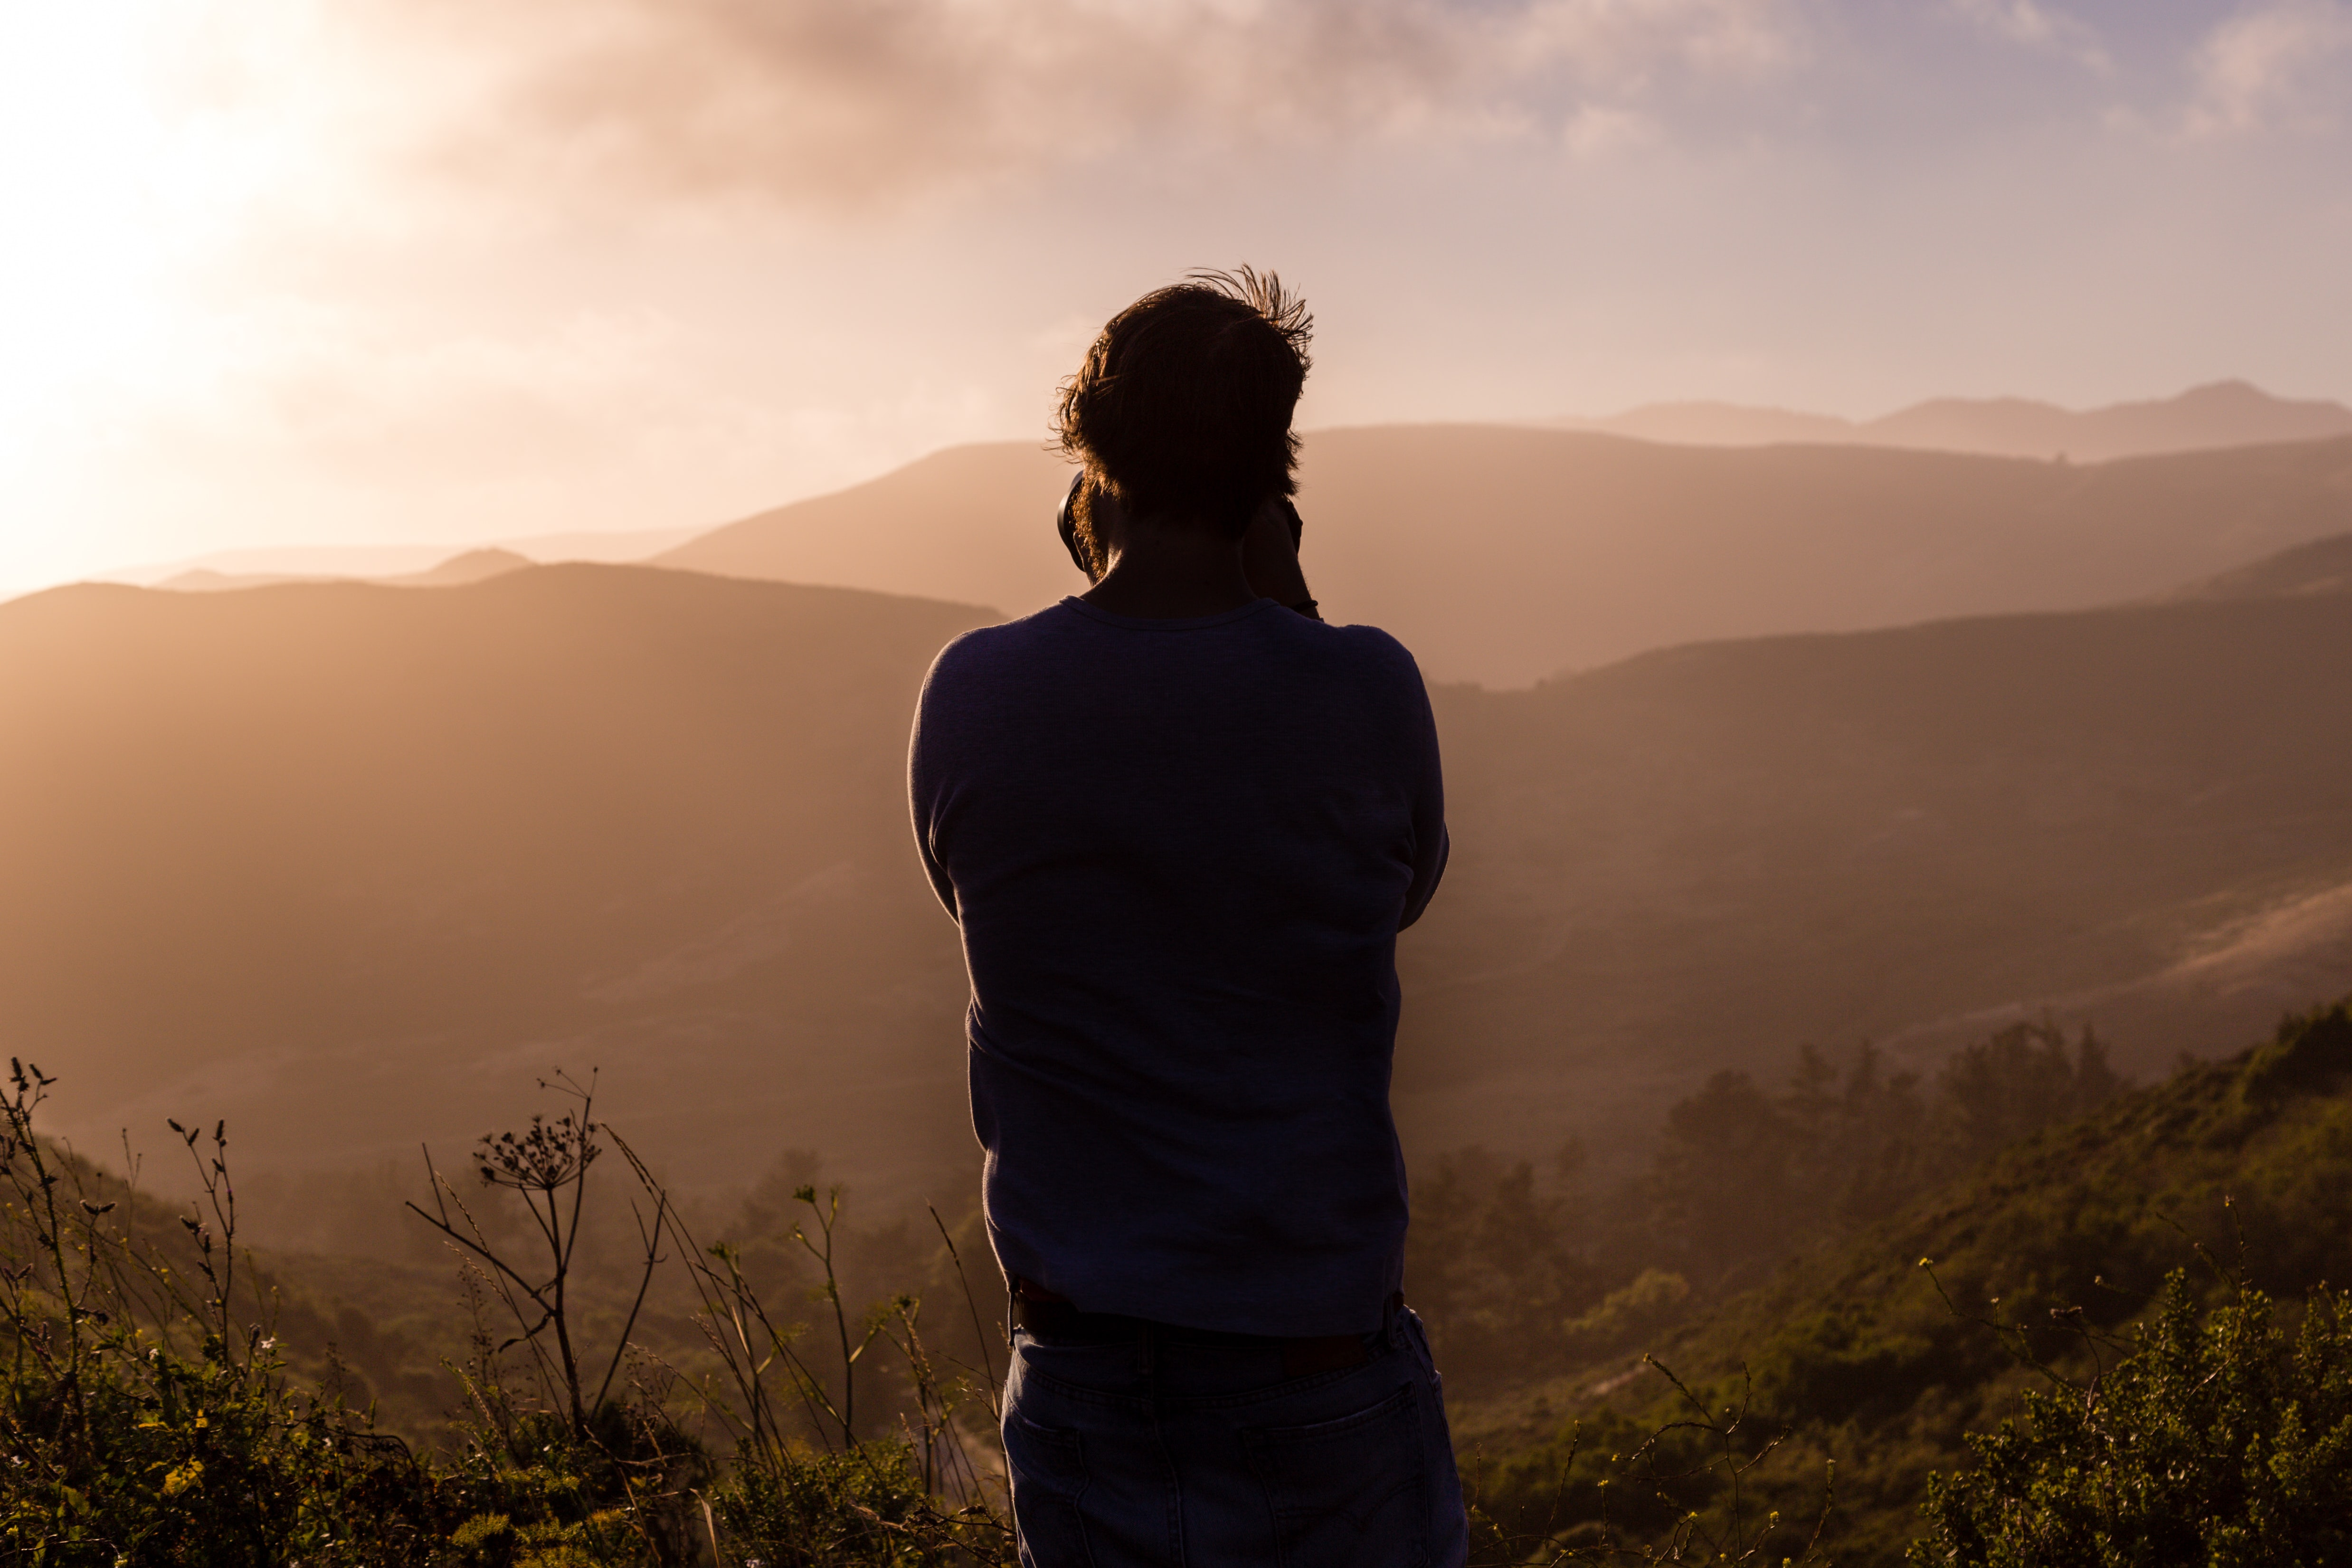 Silhouette of a photographer taking a picture of a sunset over mountains